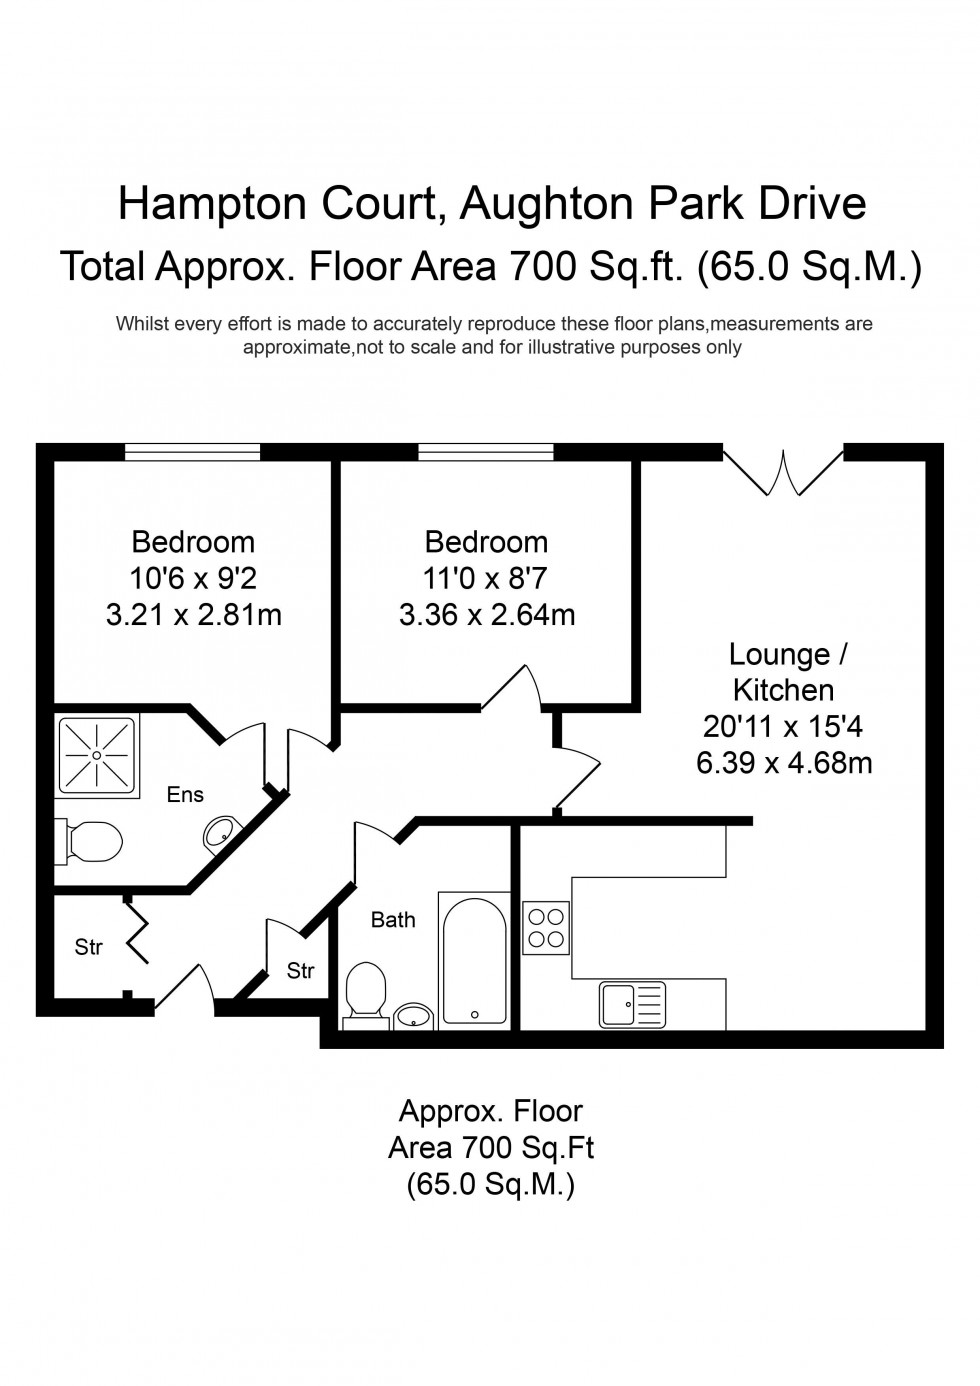 Floorplan for Aughton Park Drive, Aughton